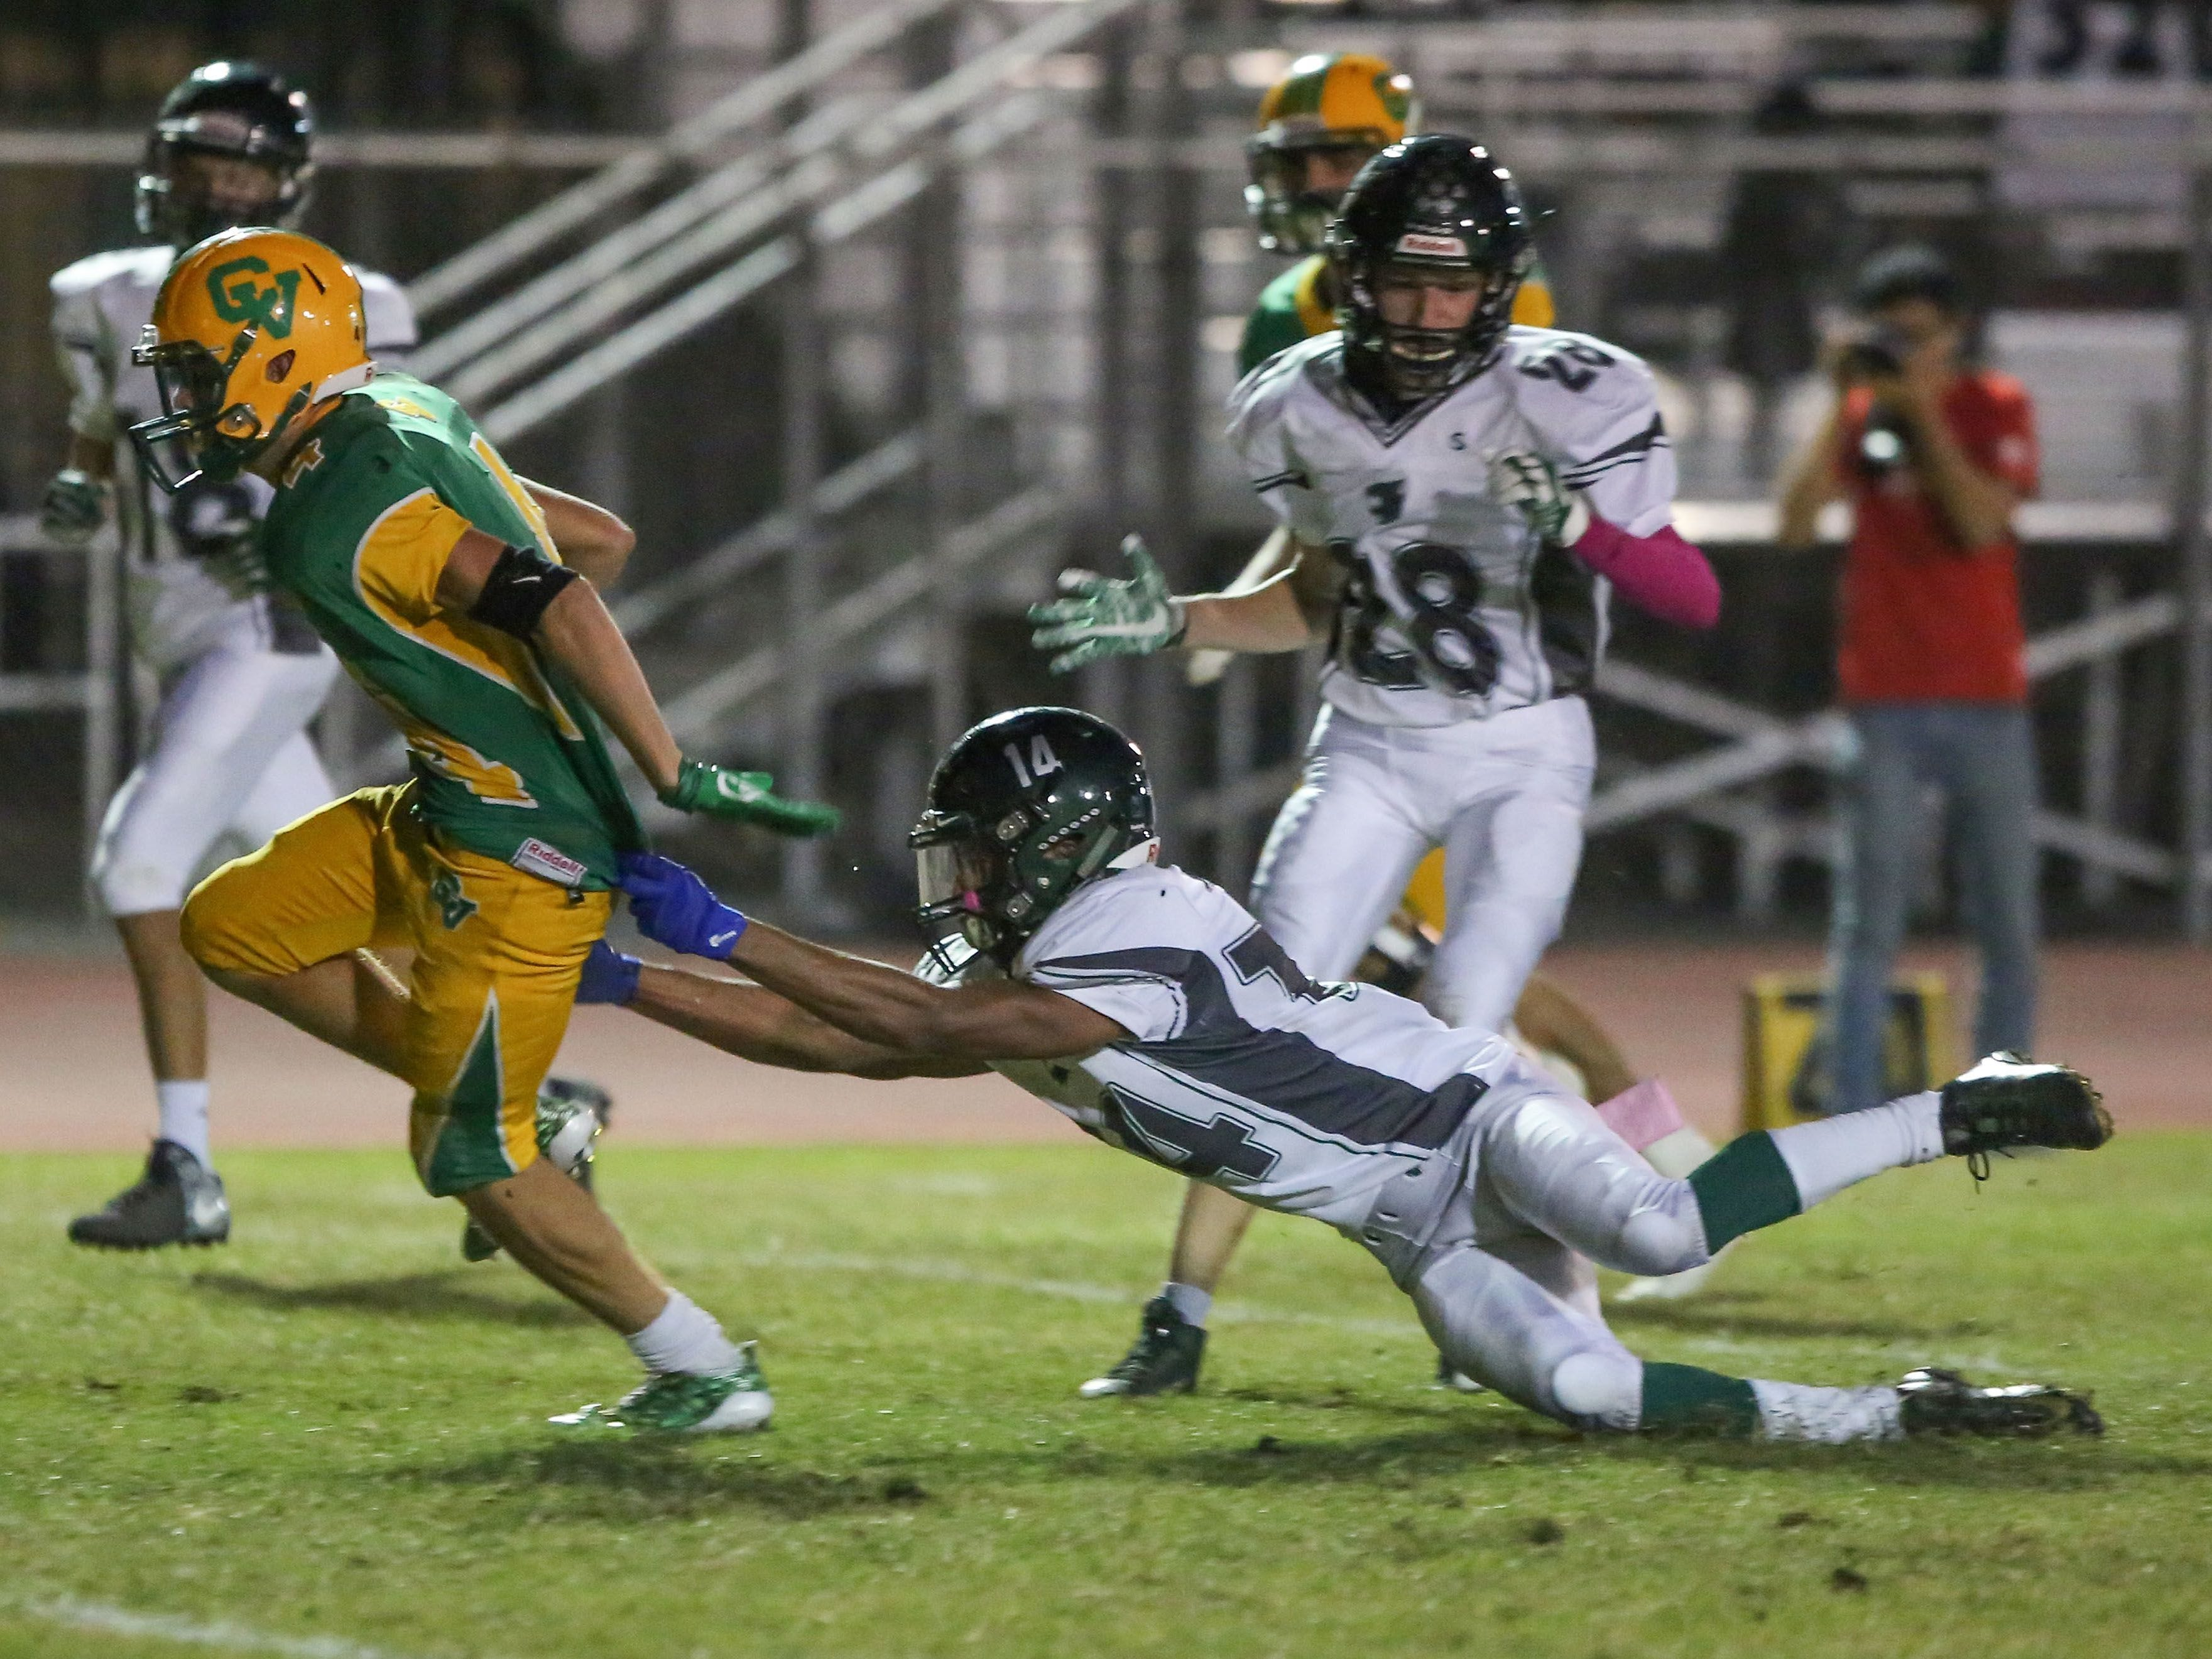 Coachella Valley receiver Angelo Fitzgerald breaks a tackle for a touchdown agasint Twentynine Palms, October 27, 2017.